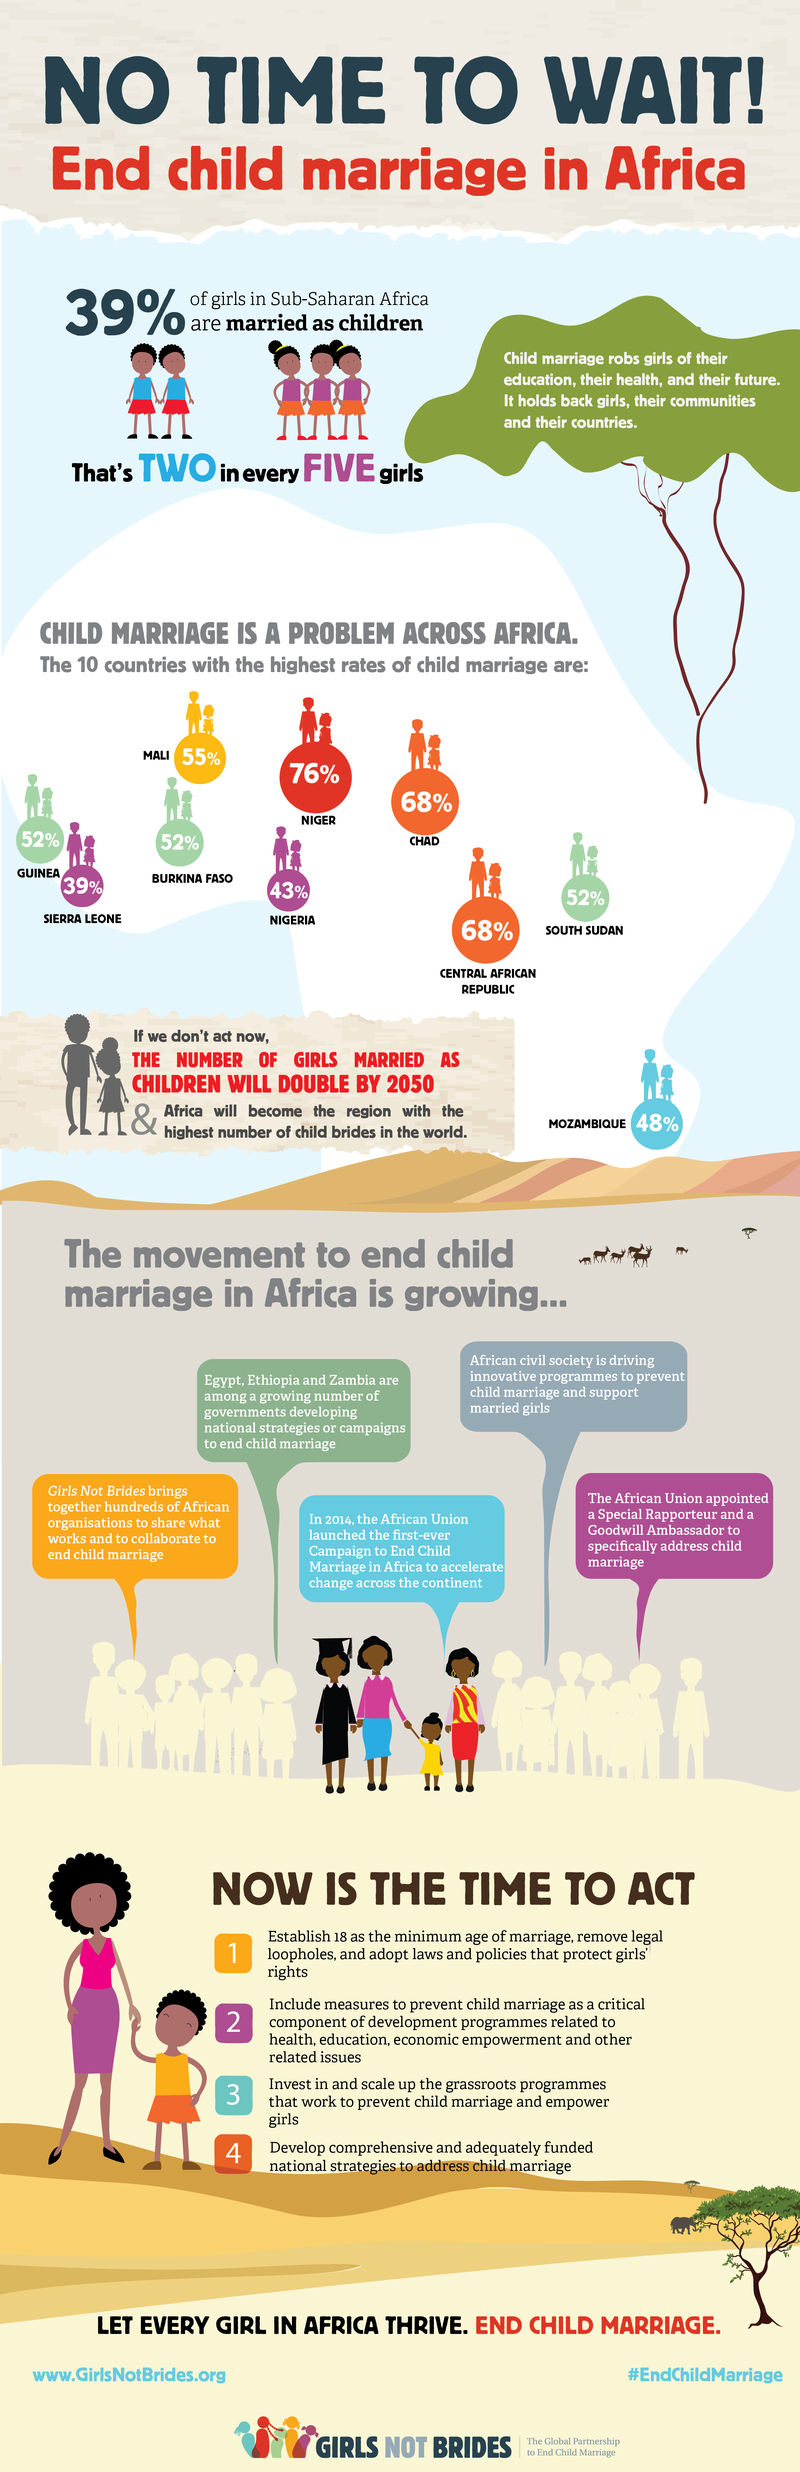 Africa-Infographic-revised-June-2017-01.png